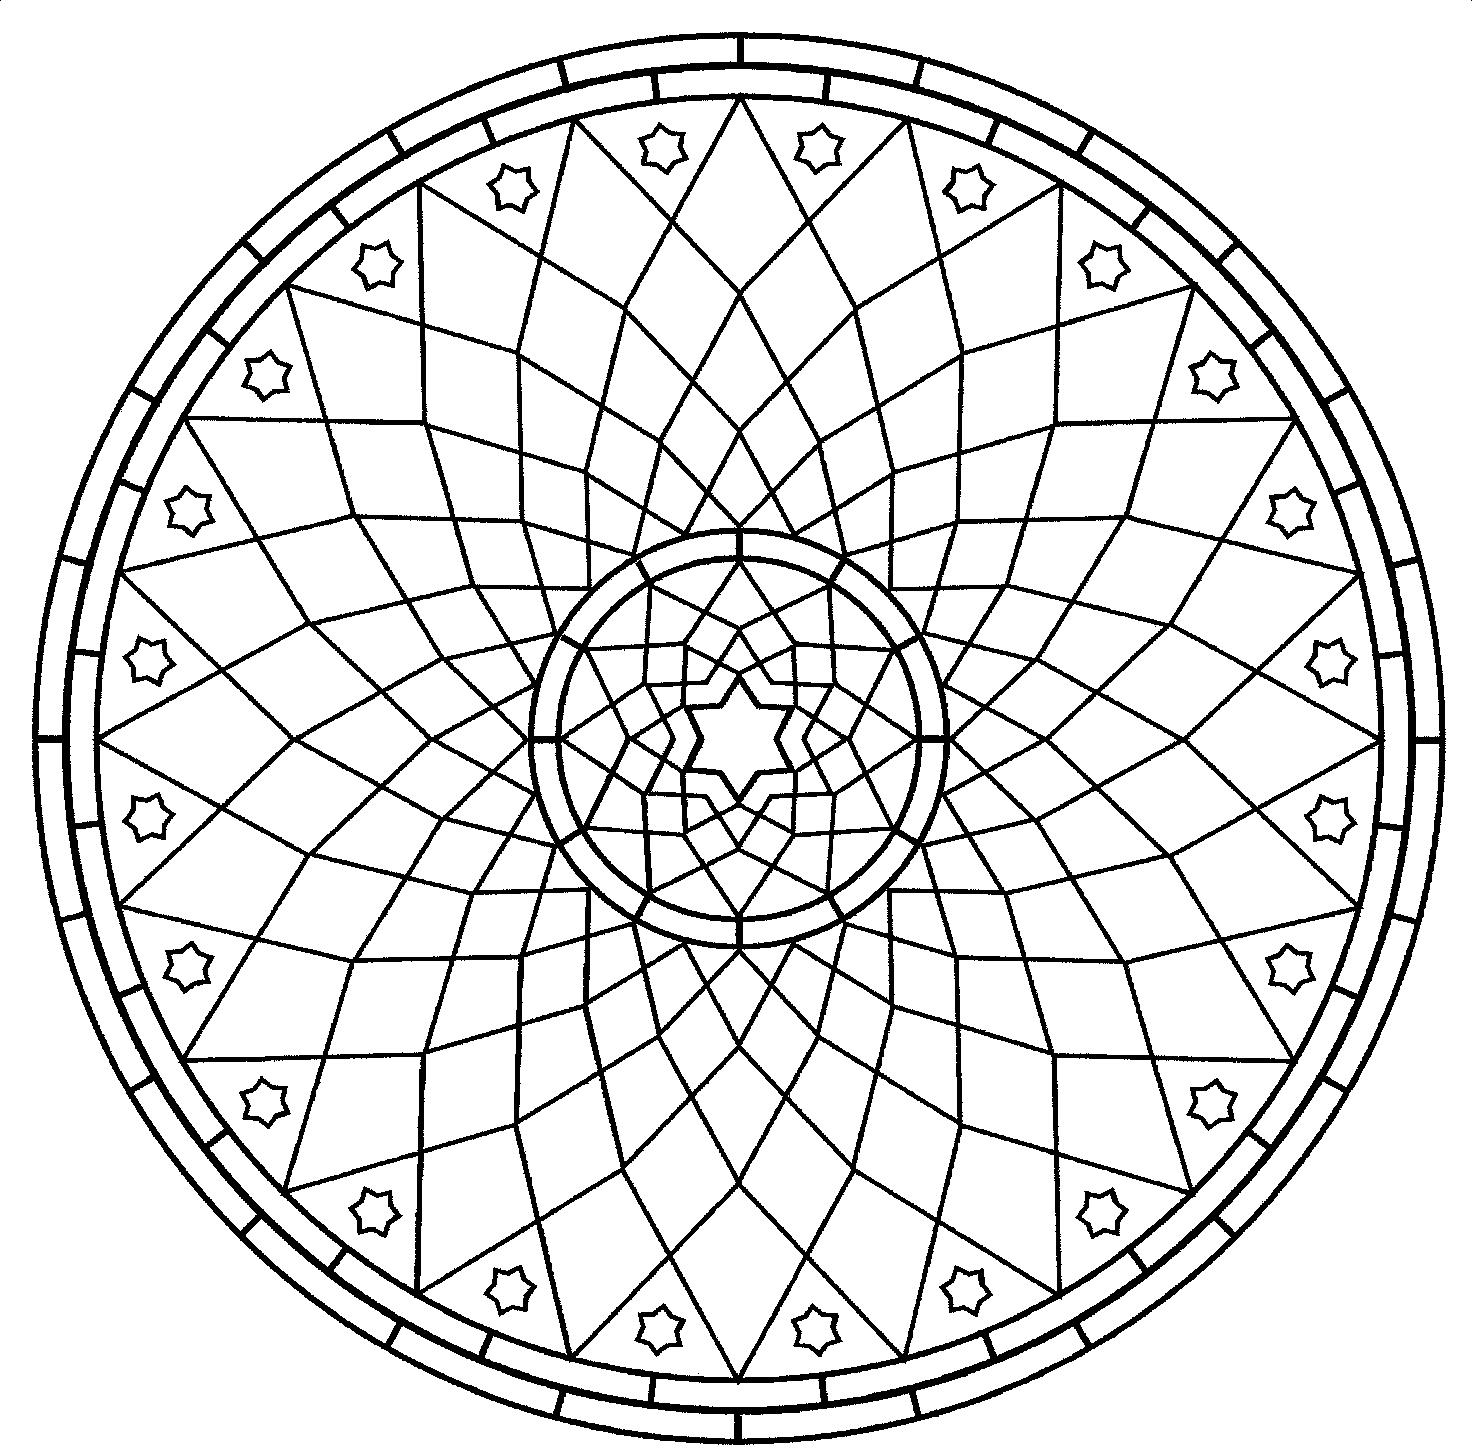 free coloring pages of mandalas - photo#31